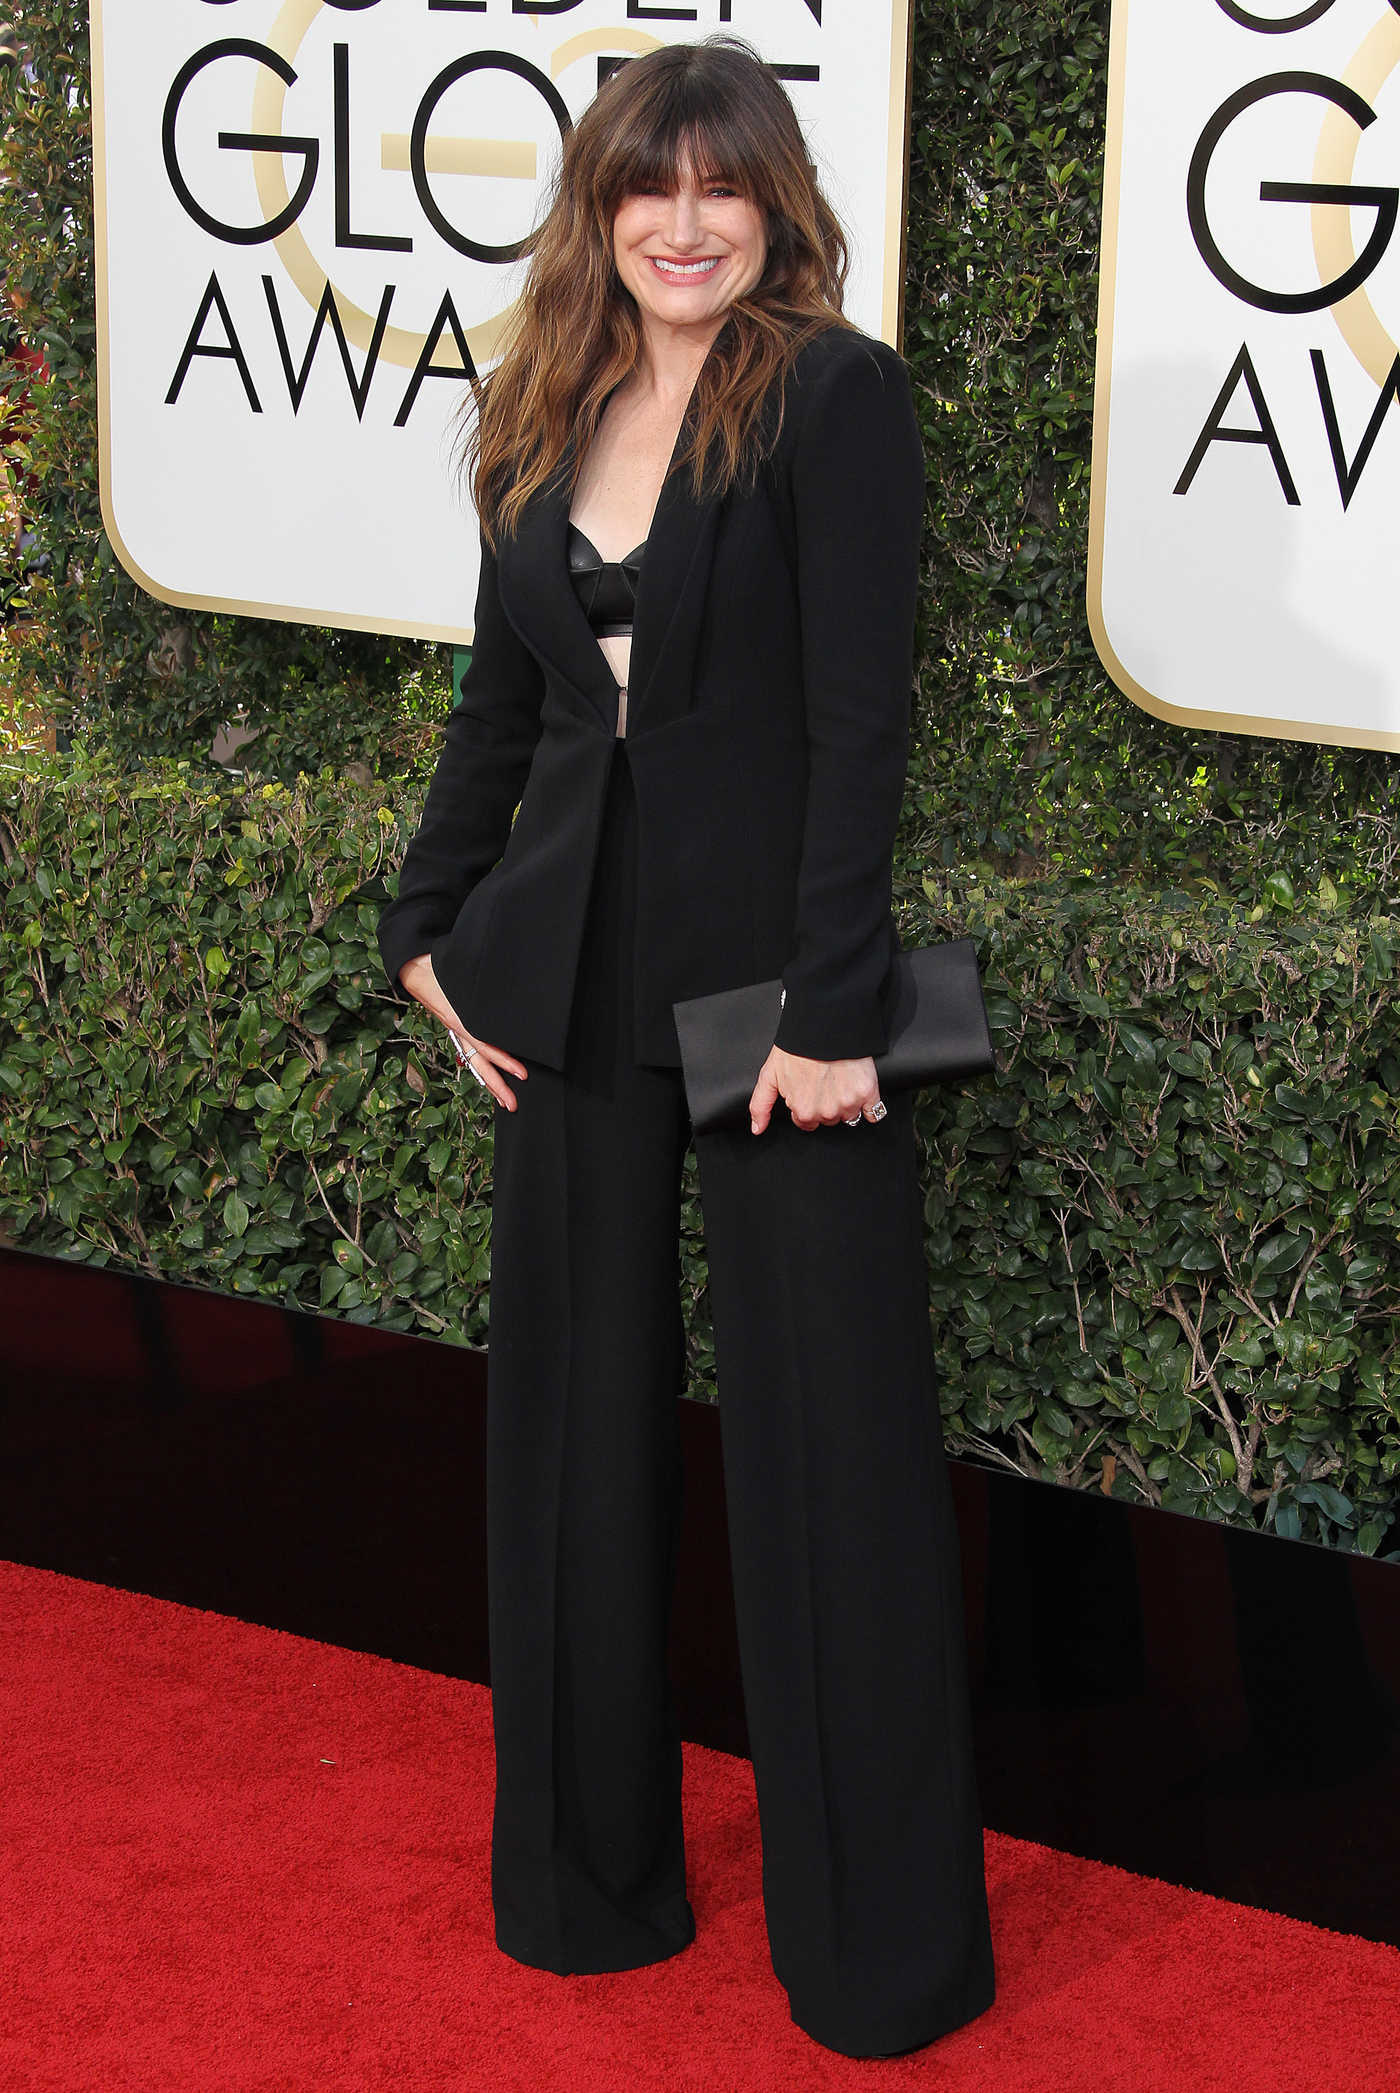 Kathryn Hahn at the 74th Annual Golden Globe Awards in Beverly Hills 01/08/2017